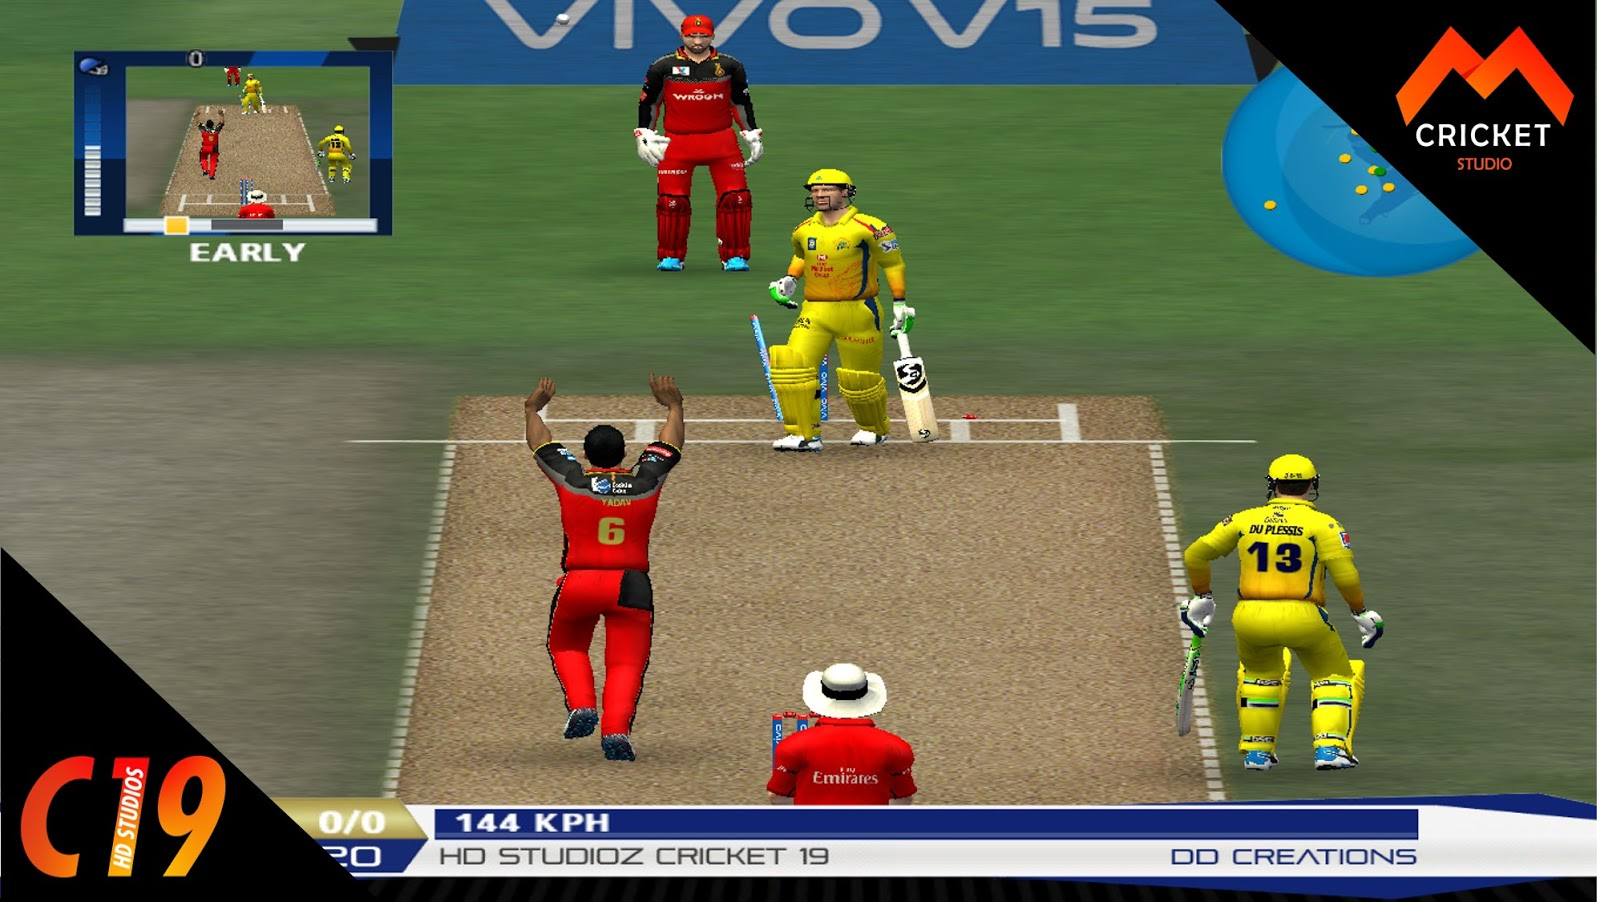 Hd Studioz Cricket 19 Patch For Ea Cricket 07 Direct